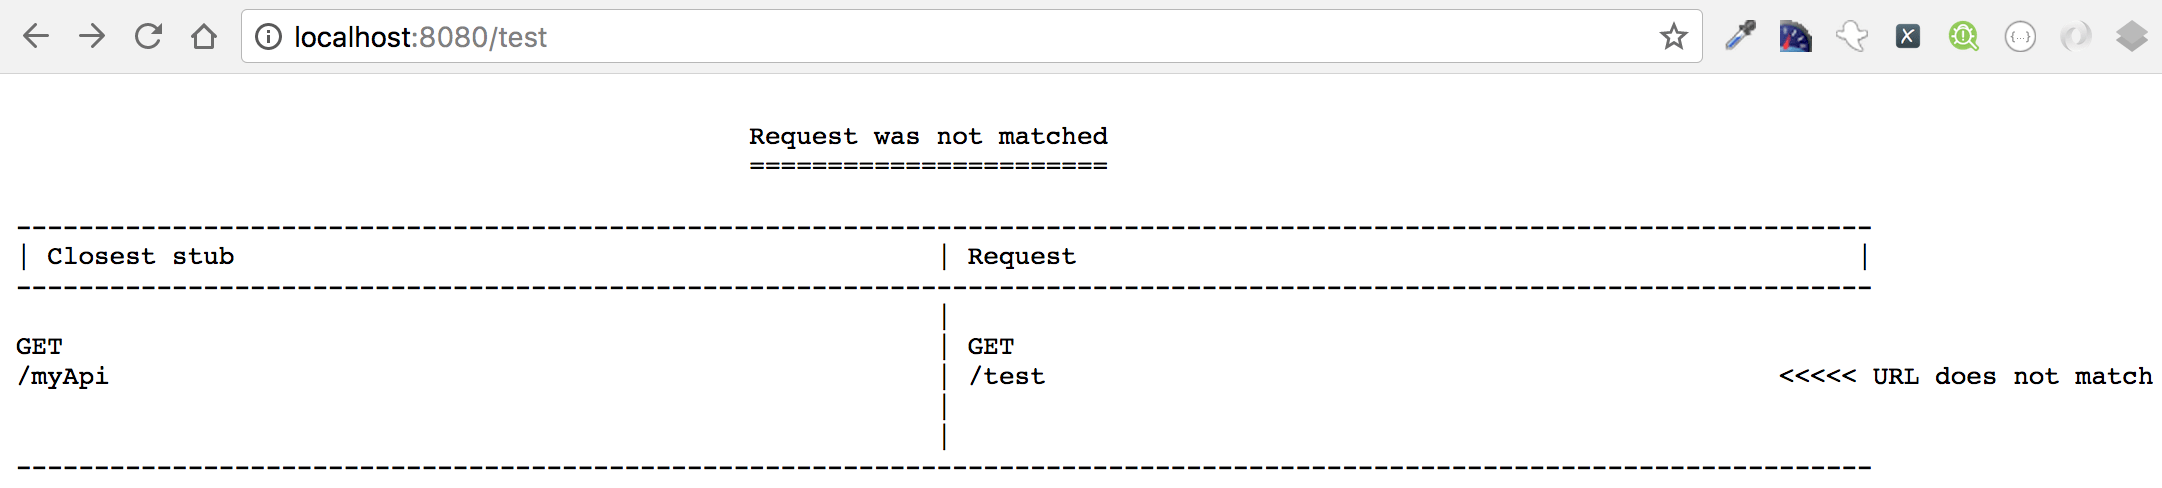 Mocking APIs using WireMock for testing negative cases when